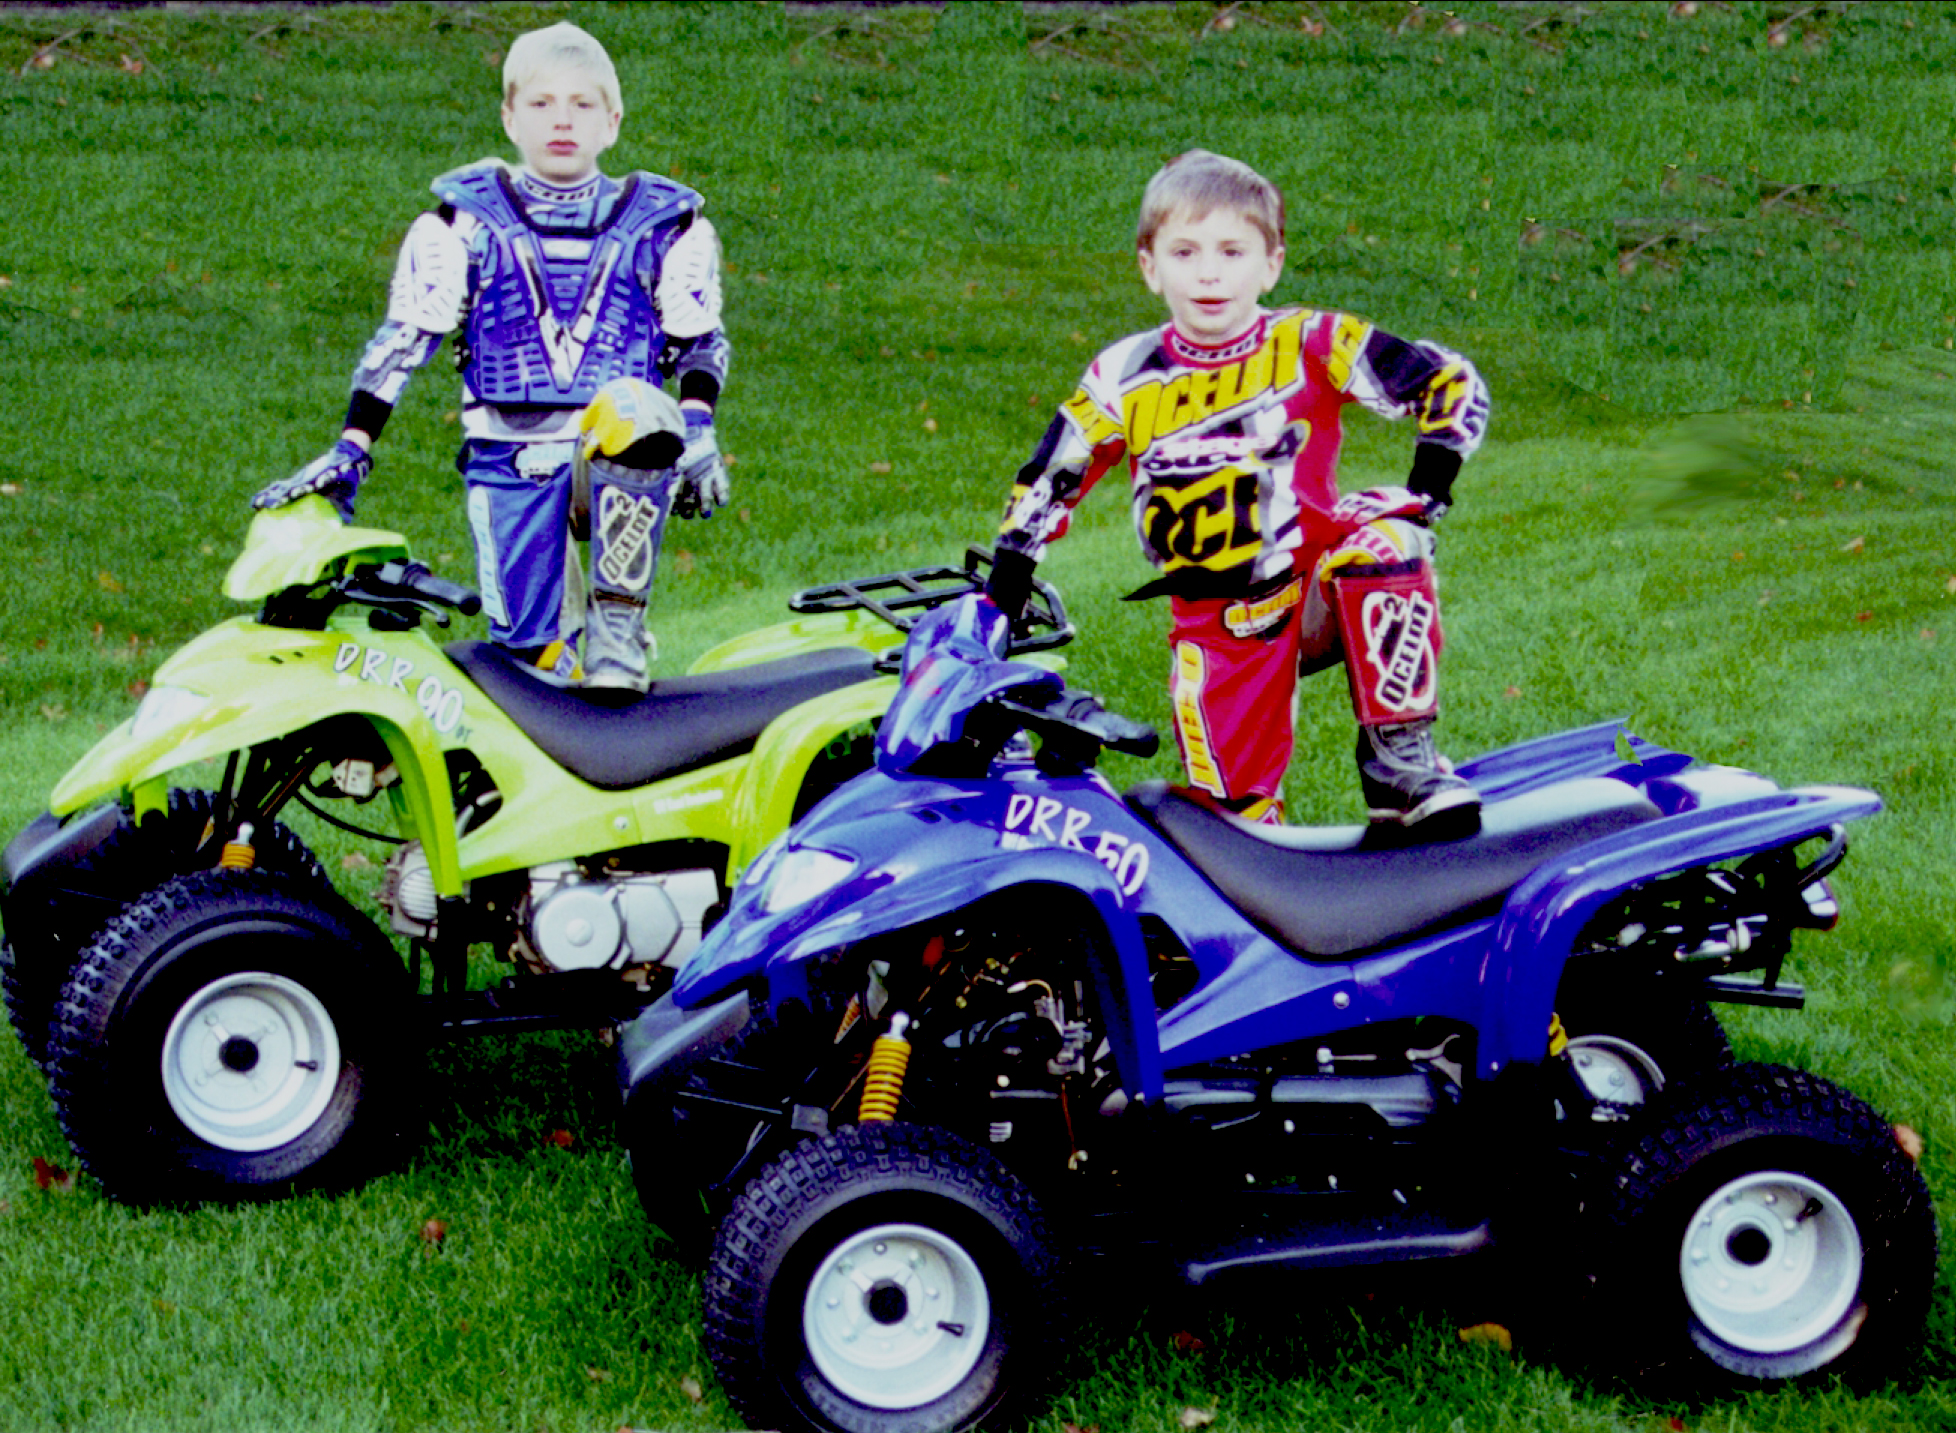 Nick and Alex Decuzzi 2002 4-Wheel ATV Action Magazine.jpg